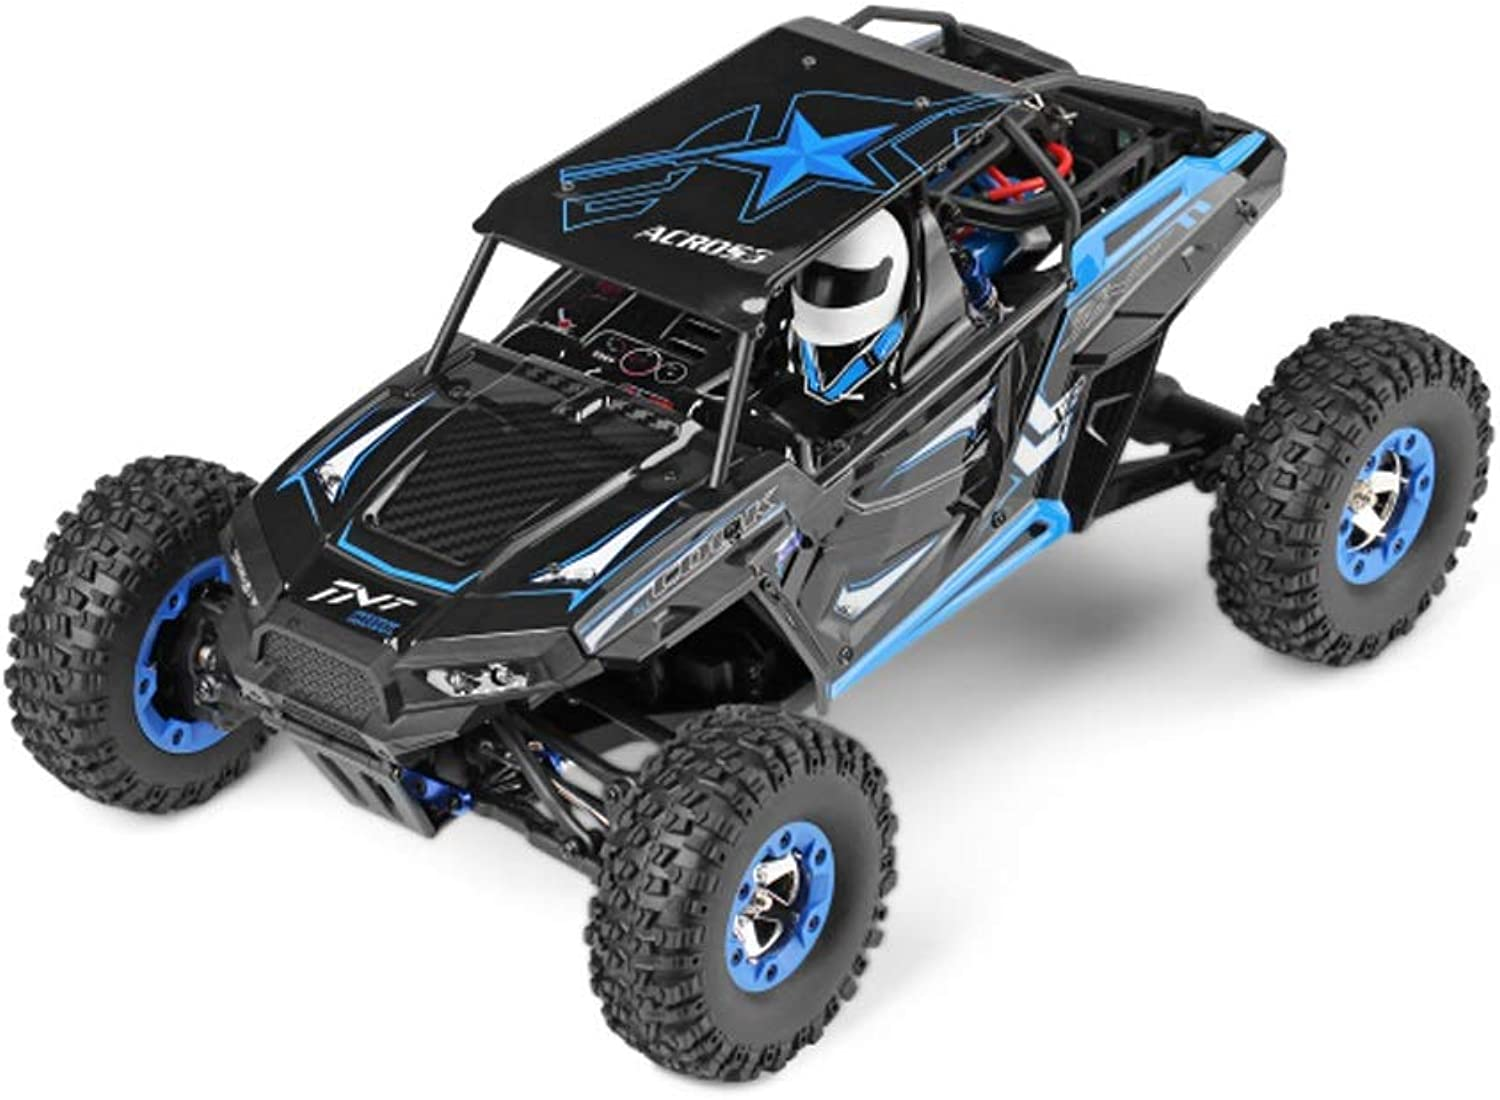 Pinjeer 3 Style Optioanl High-speed Four-wheel Drive Climbing Car 50KM H Professional Competition 1 12 Remote Control Car Model Gifts for Kids 12+ (color   bluee, Size   2-Battery)